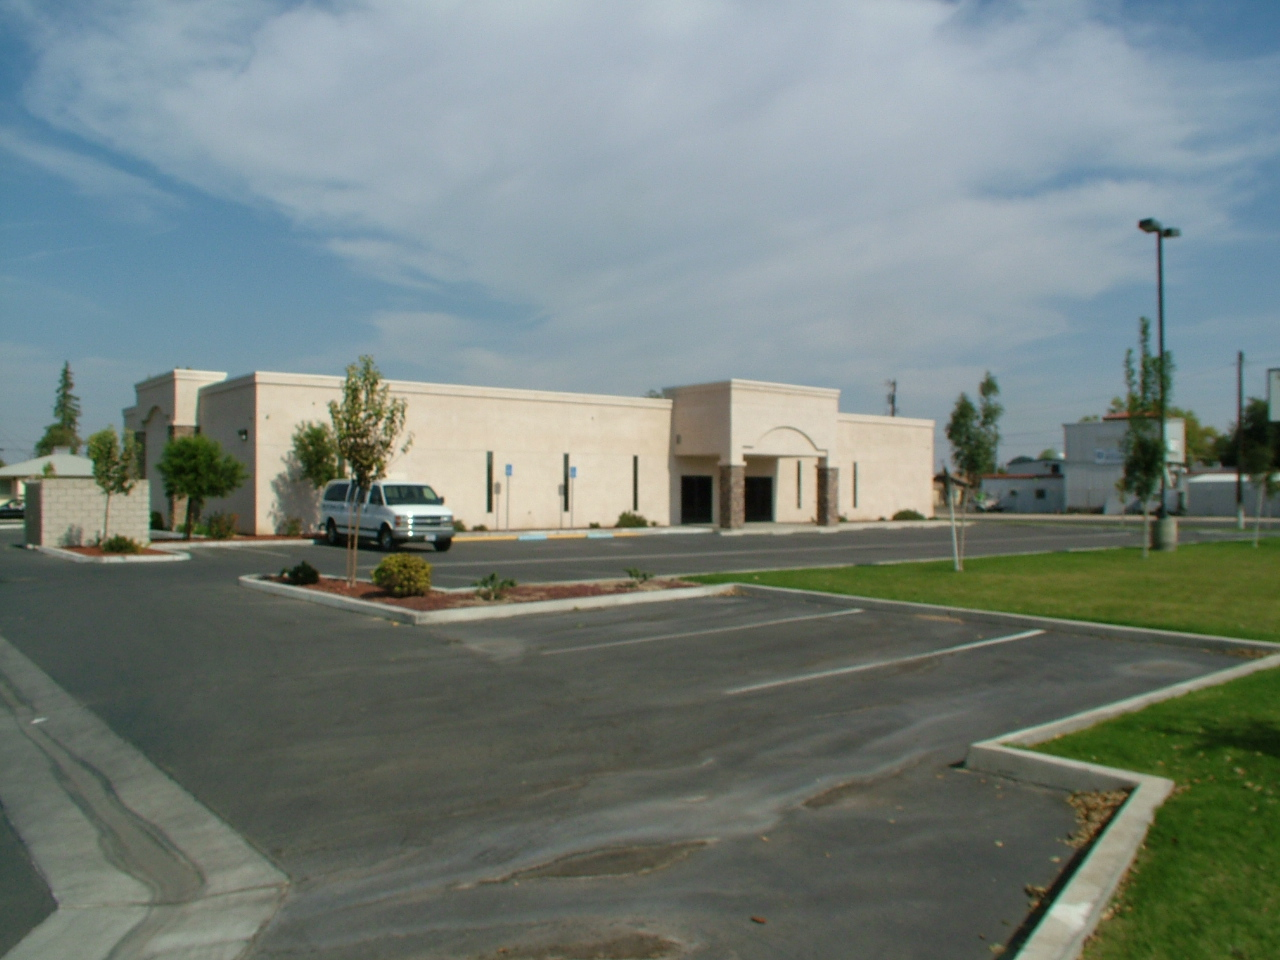 10-21-09websitephotos 012